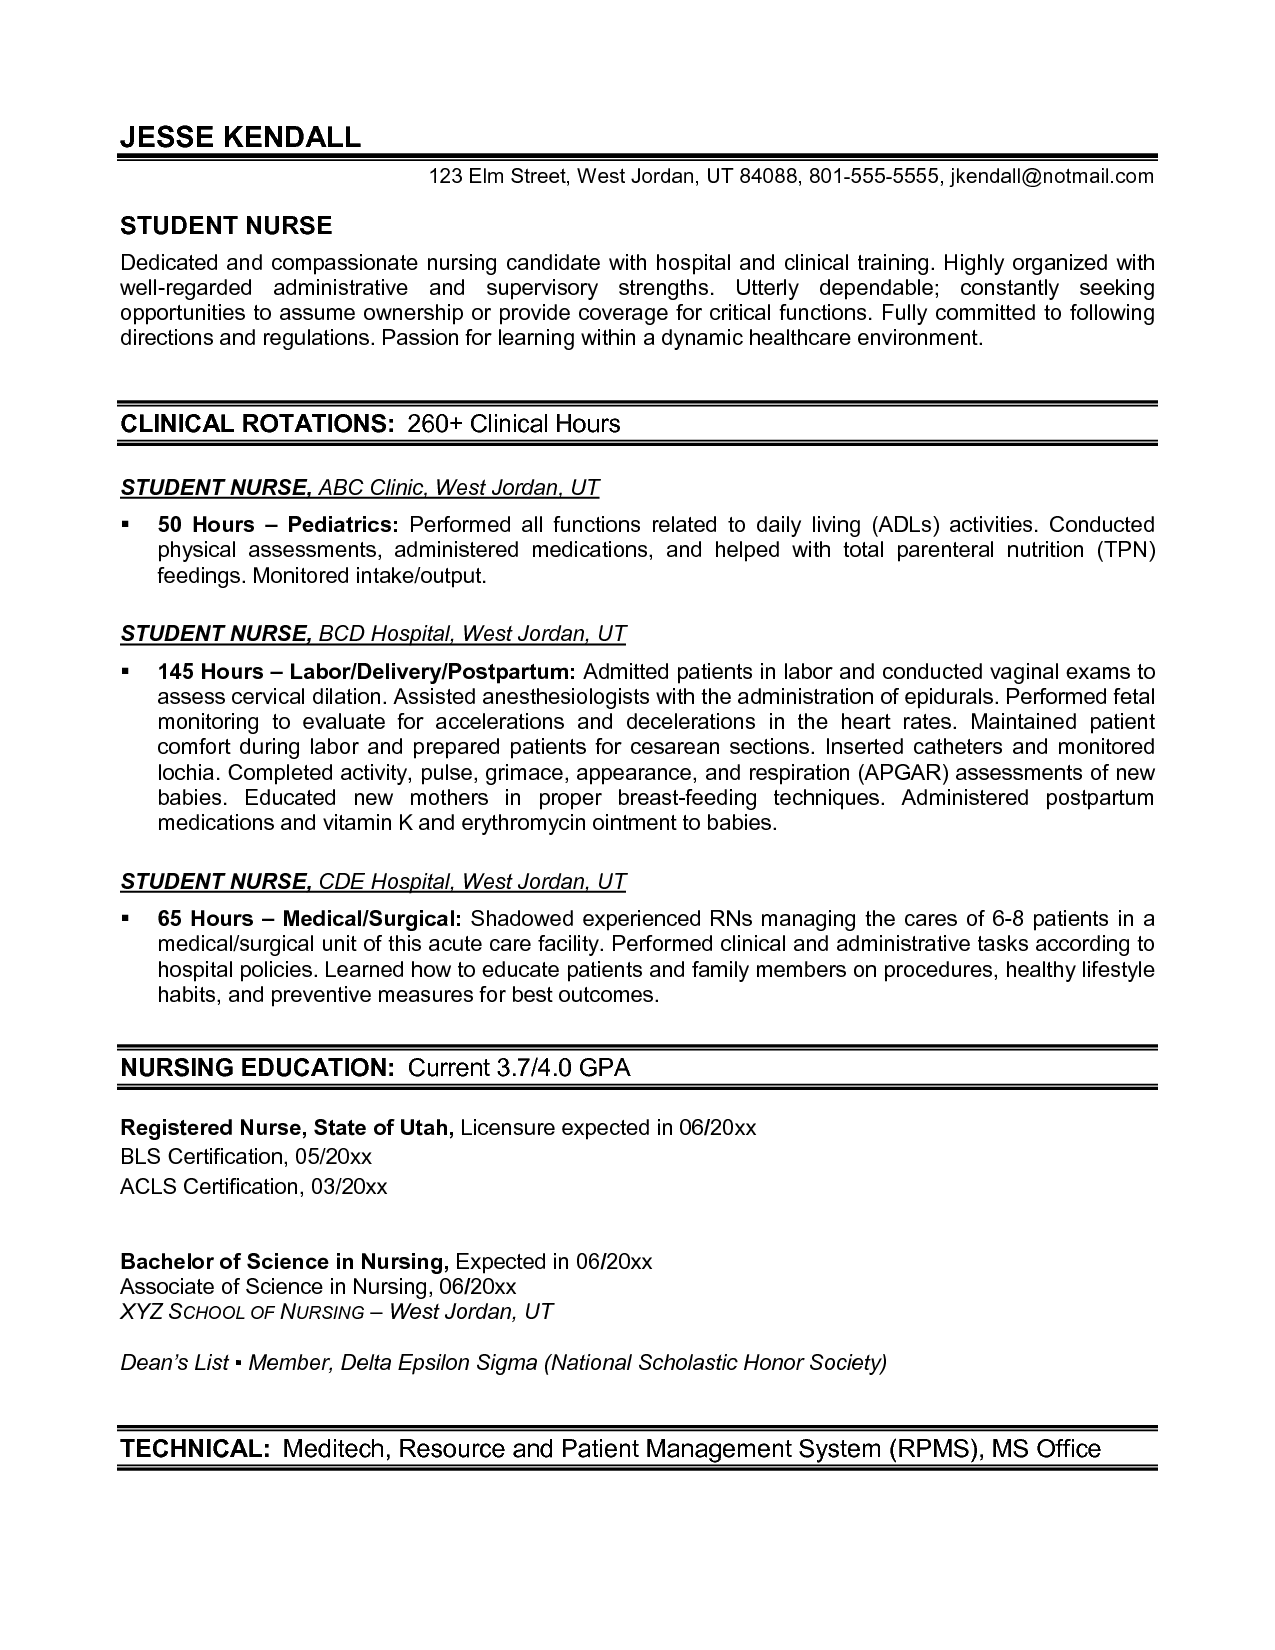 Nurse Educator Resume Resume Lpn Nursing Home Rn Resume Example Resume Cv  Cover Letter .